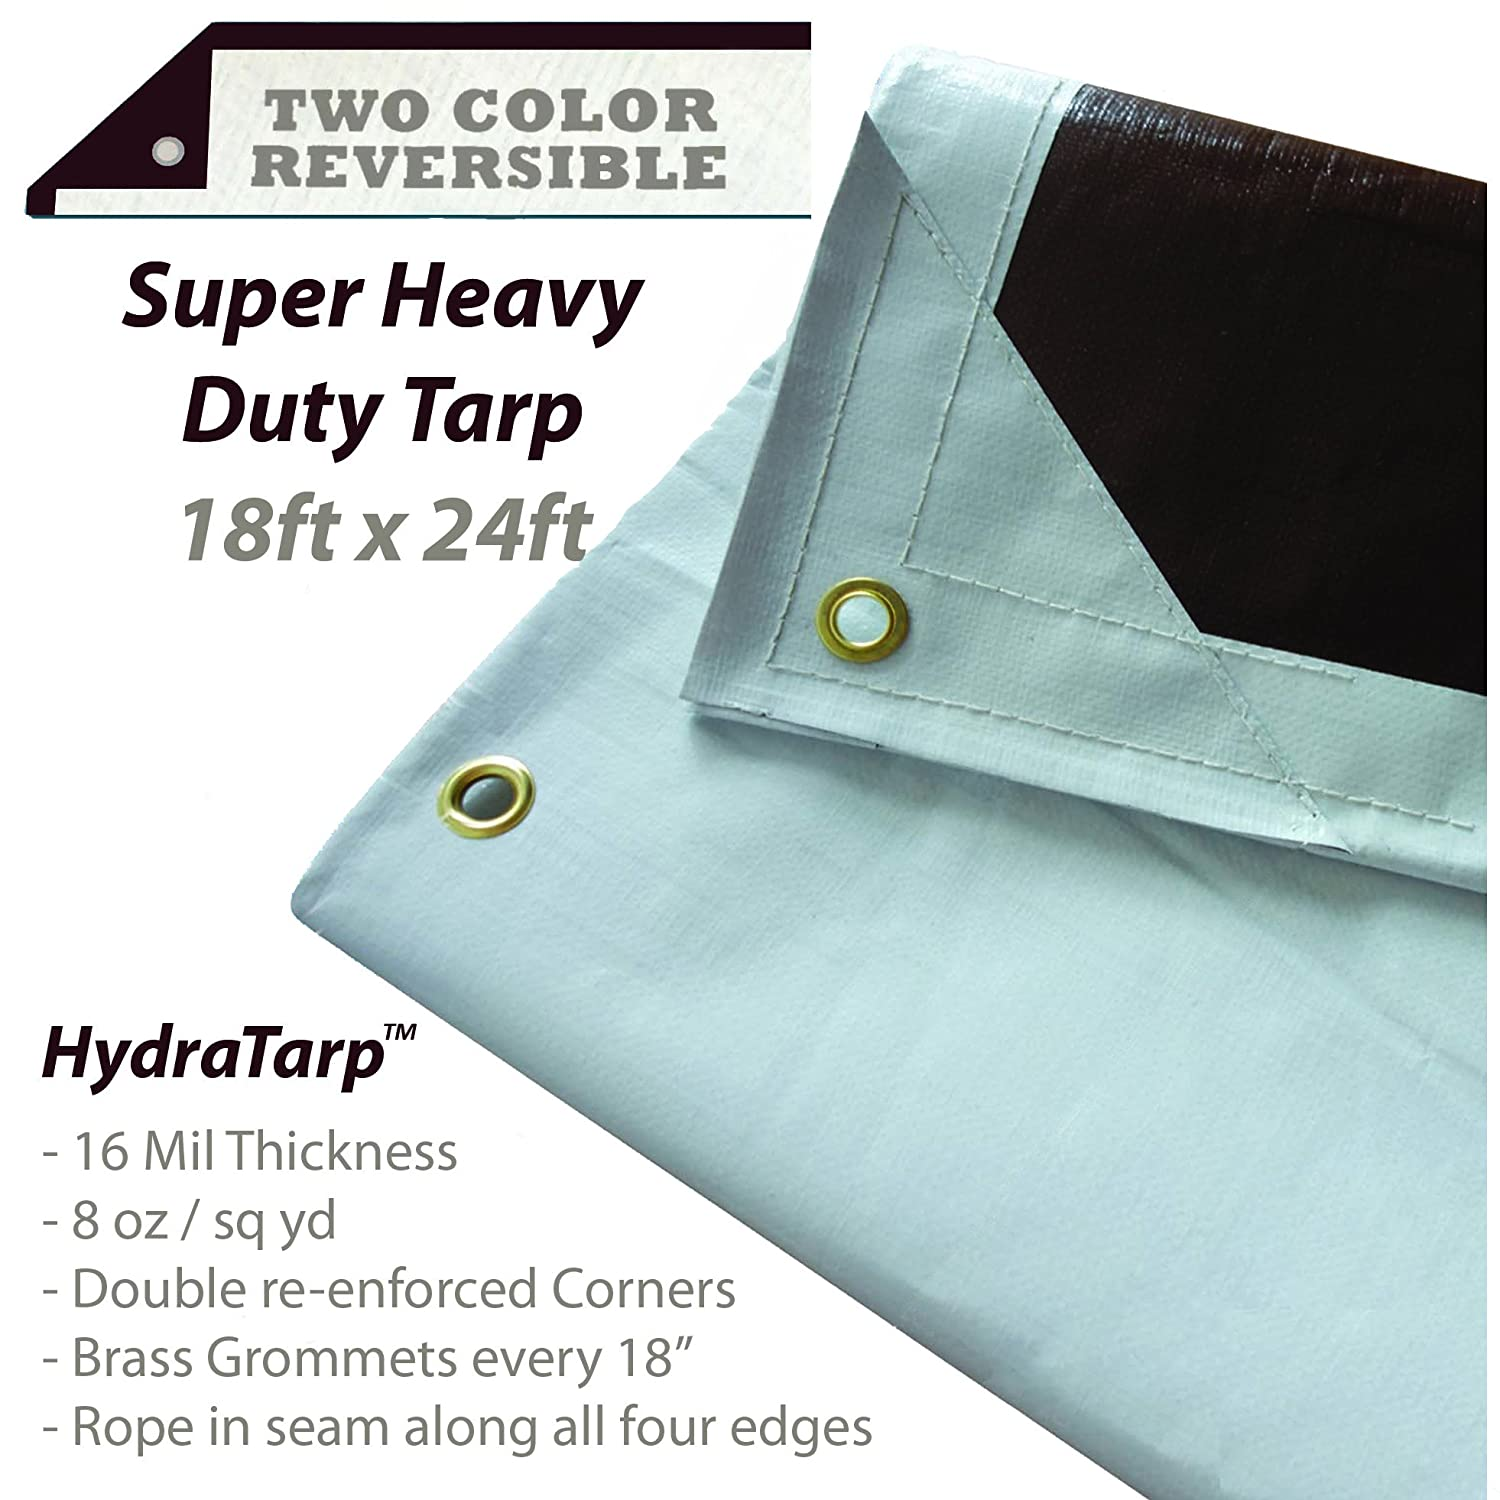 Watershed Innovations HydraTarp 12 Ft White//Brown Reversible Tarp WI-HTARP-12x40-Brown-White Super Heavy Duty Waterproof Tarp X 40 Ft 16mil Thick